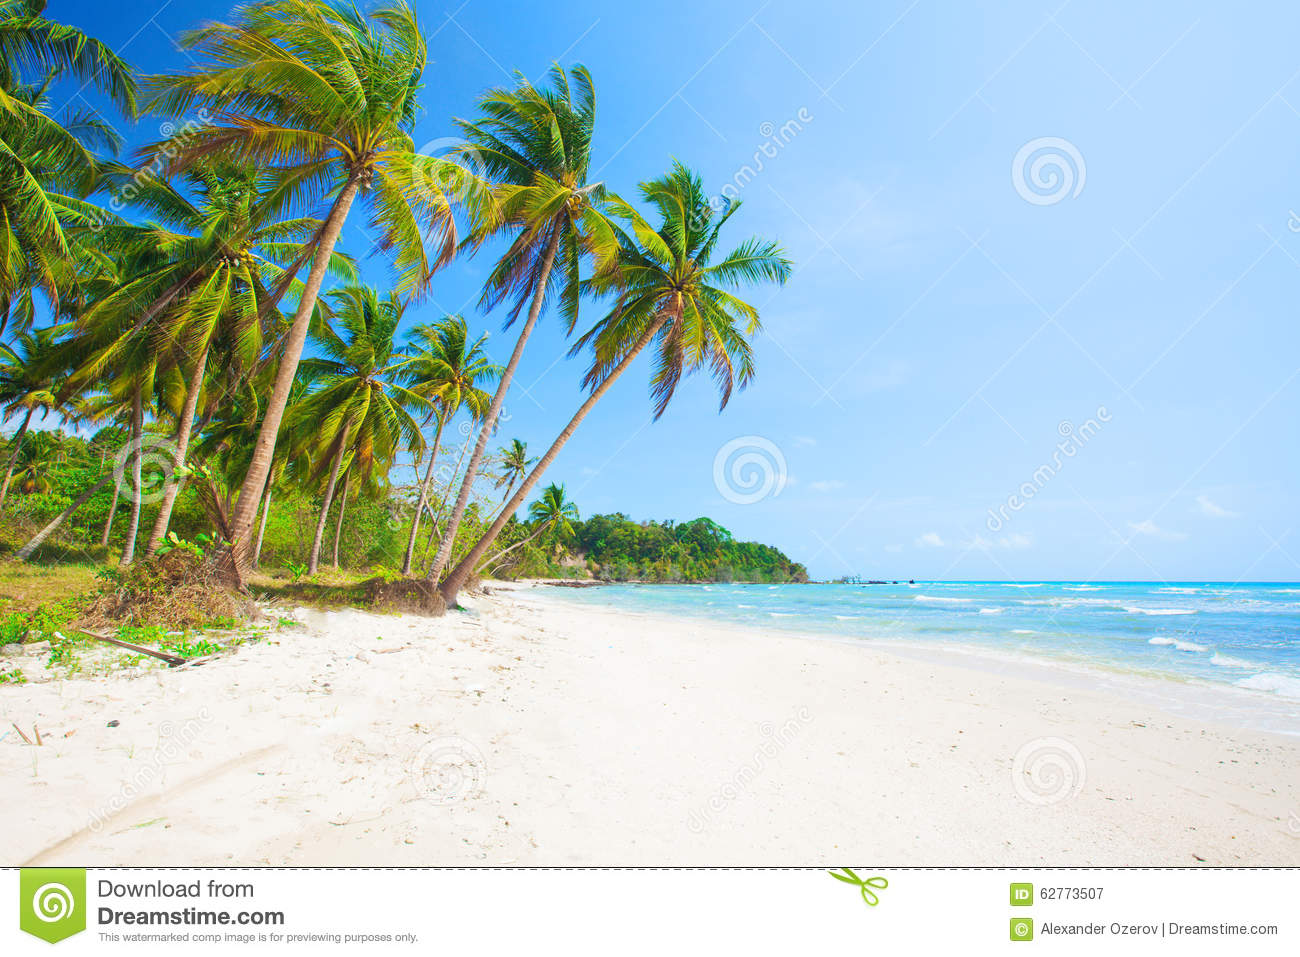 Romantic Pictures Of Tropical Beaches: Tropical Beach With Coconut Palm And Sea Stock Image